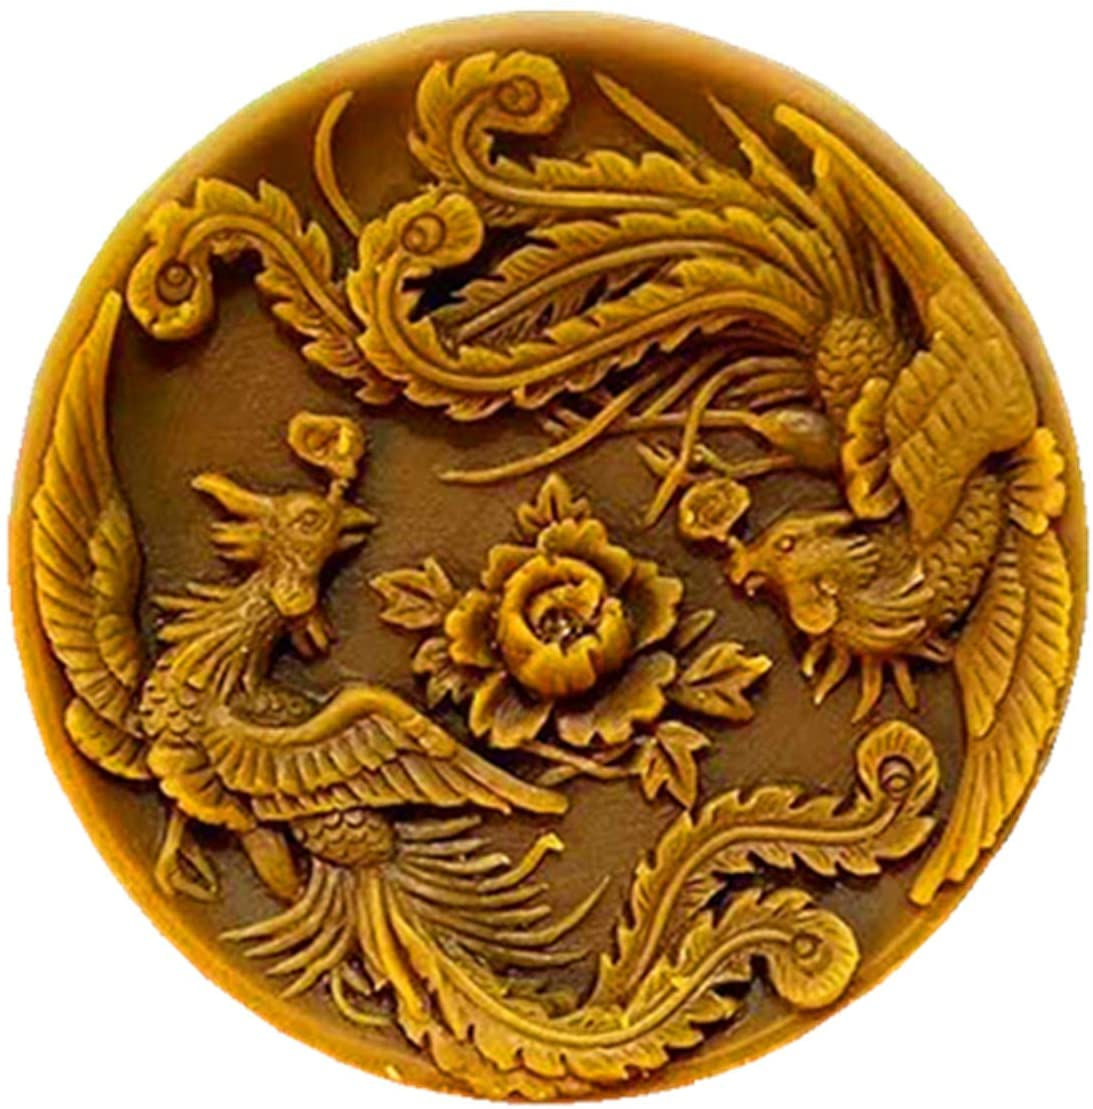 Phoenix Design Round Silicone Soap Mold Scented Candle Wax Mould Decorating Resin Plaster Crafts Molds